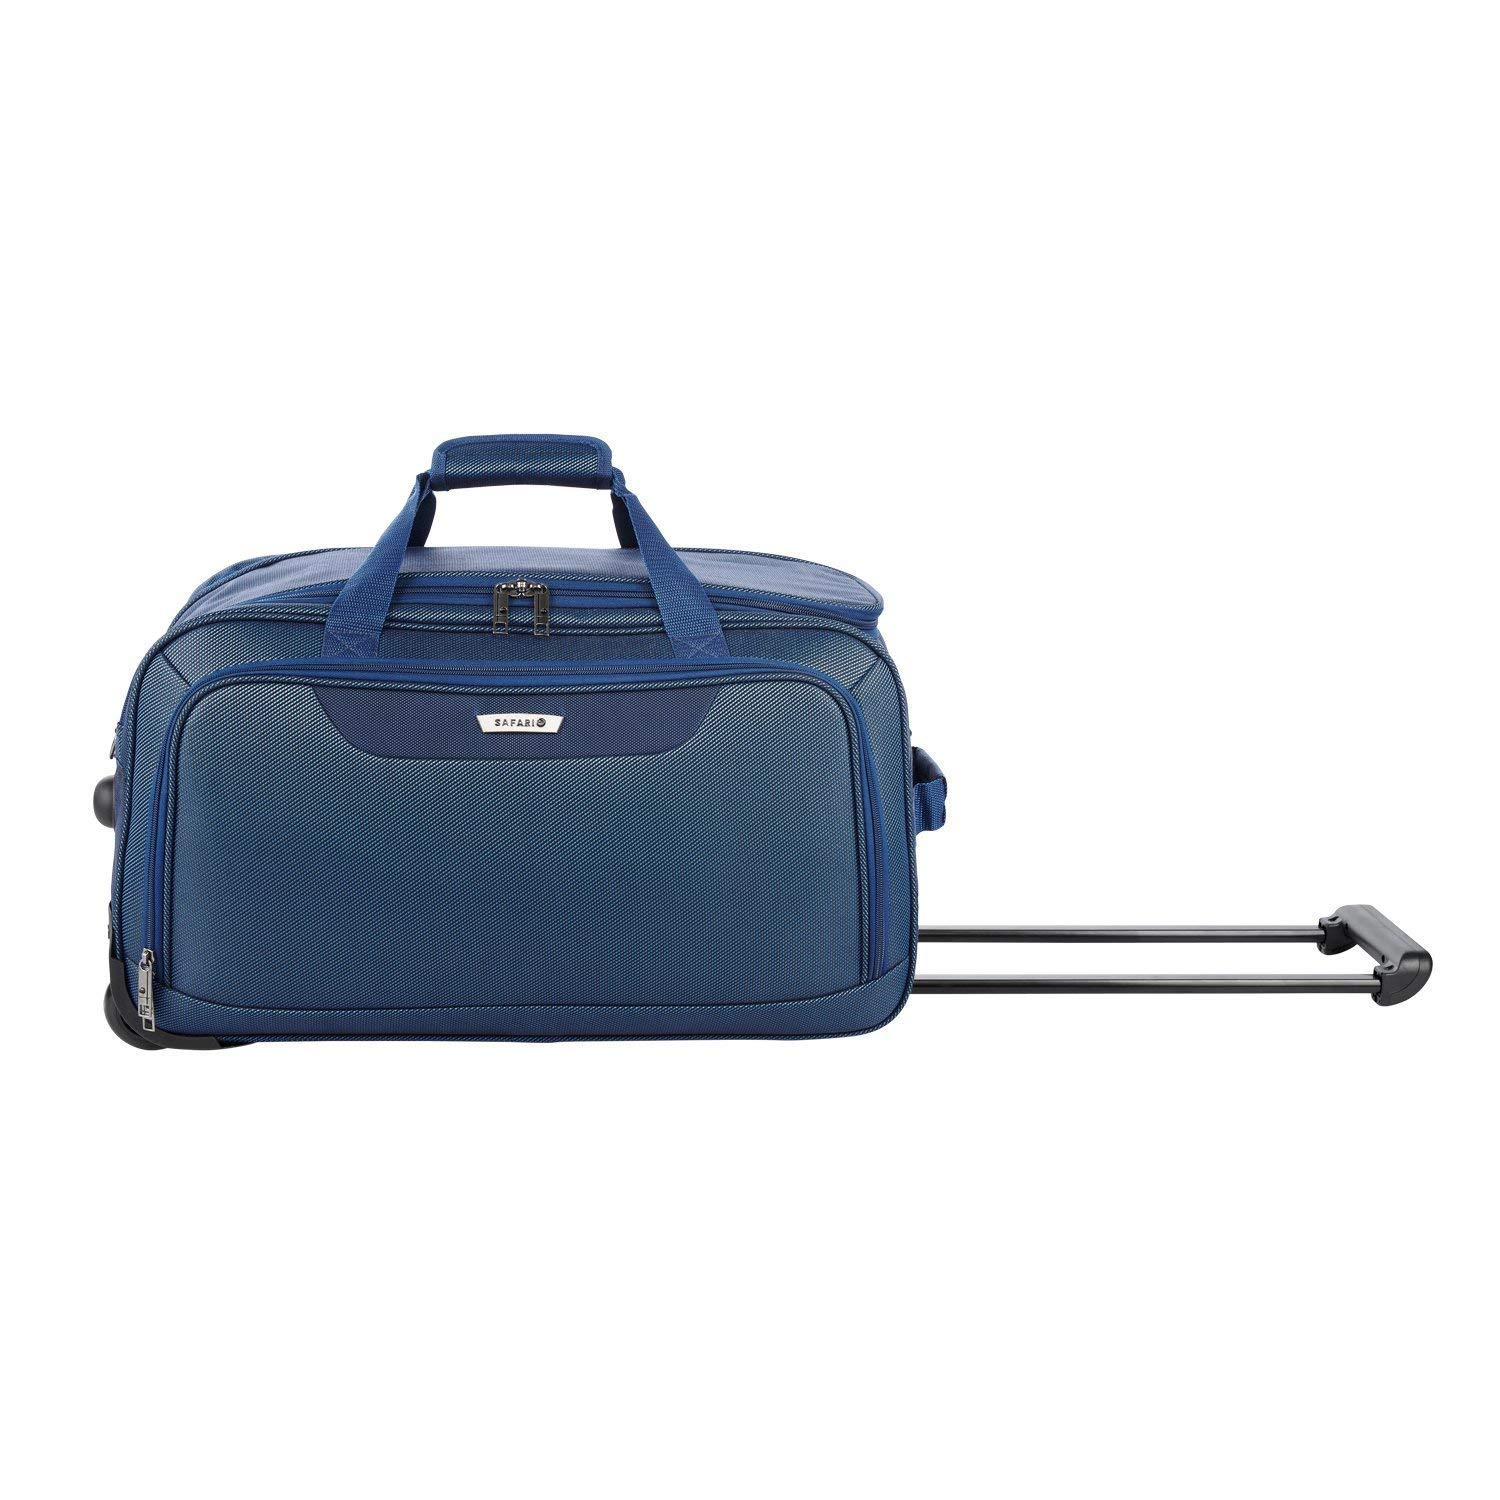 Safari Polyester Stylish Blue Color Rolling Wheel Duffel Travel Bag (Rockies  RDFL 55 Blue)  Amazon.in  Bags df860bfa4c6ed